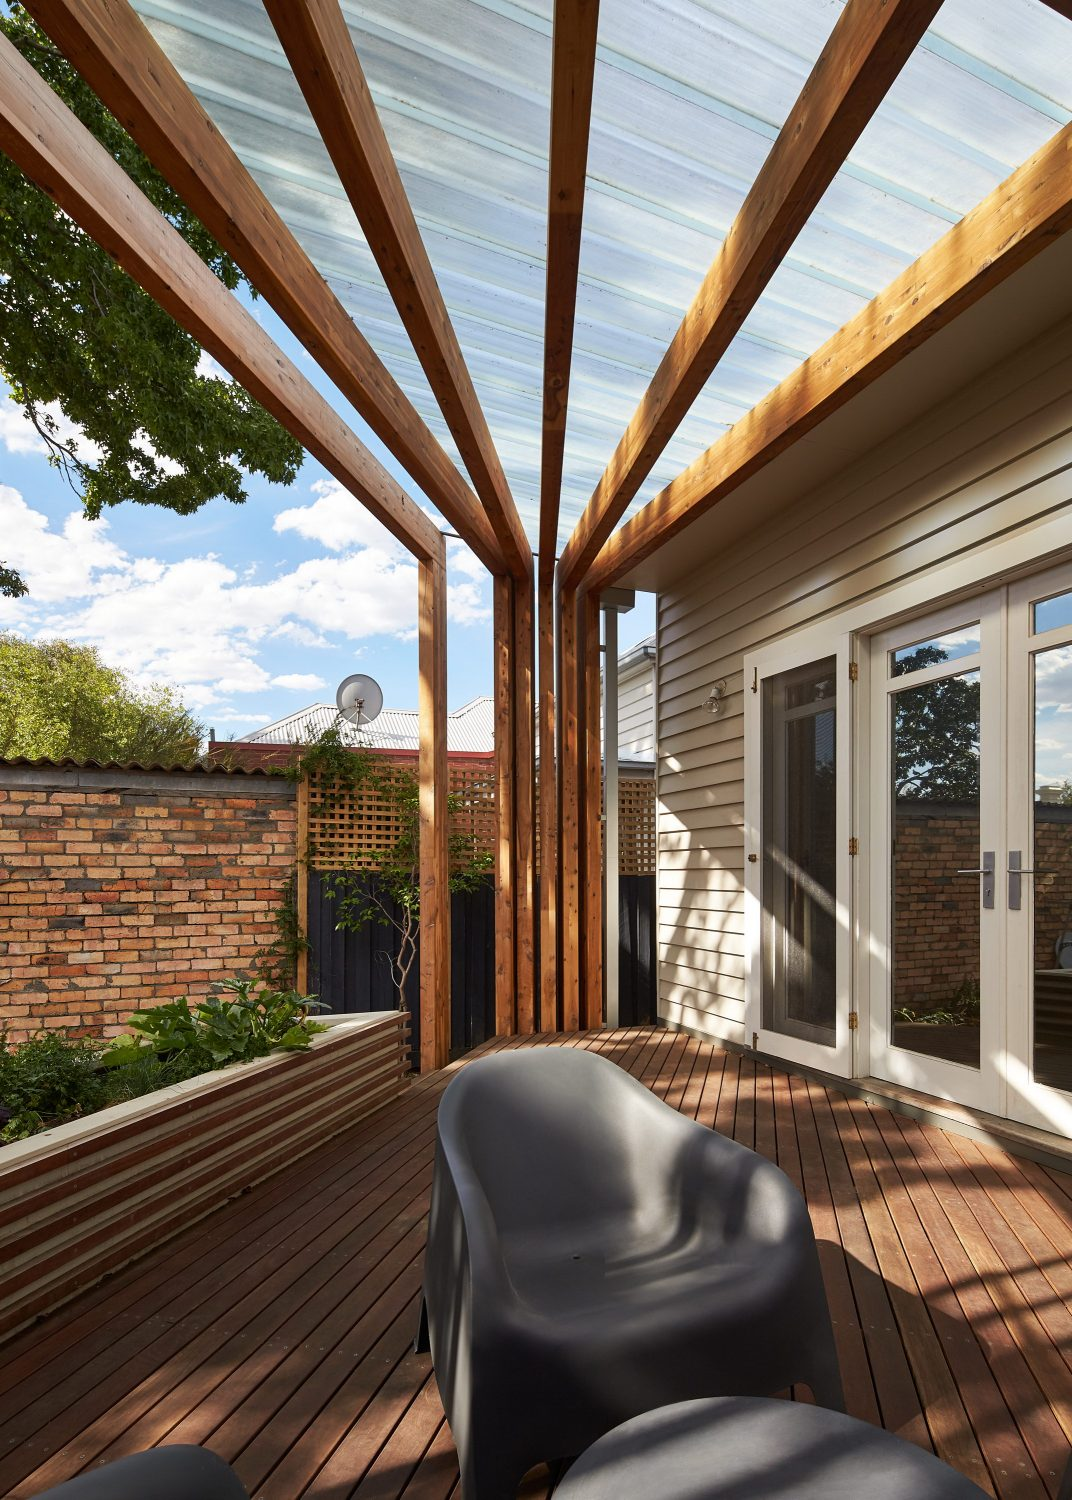 Kelvin House by fmd architects